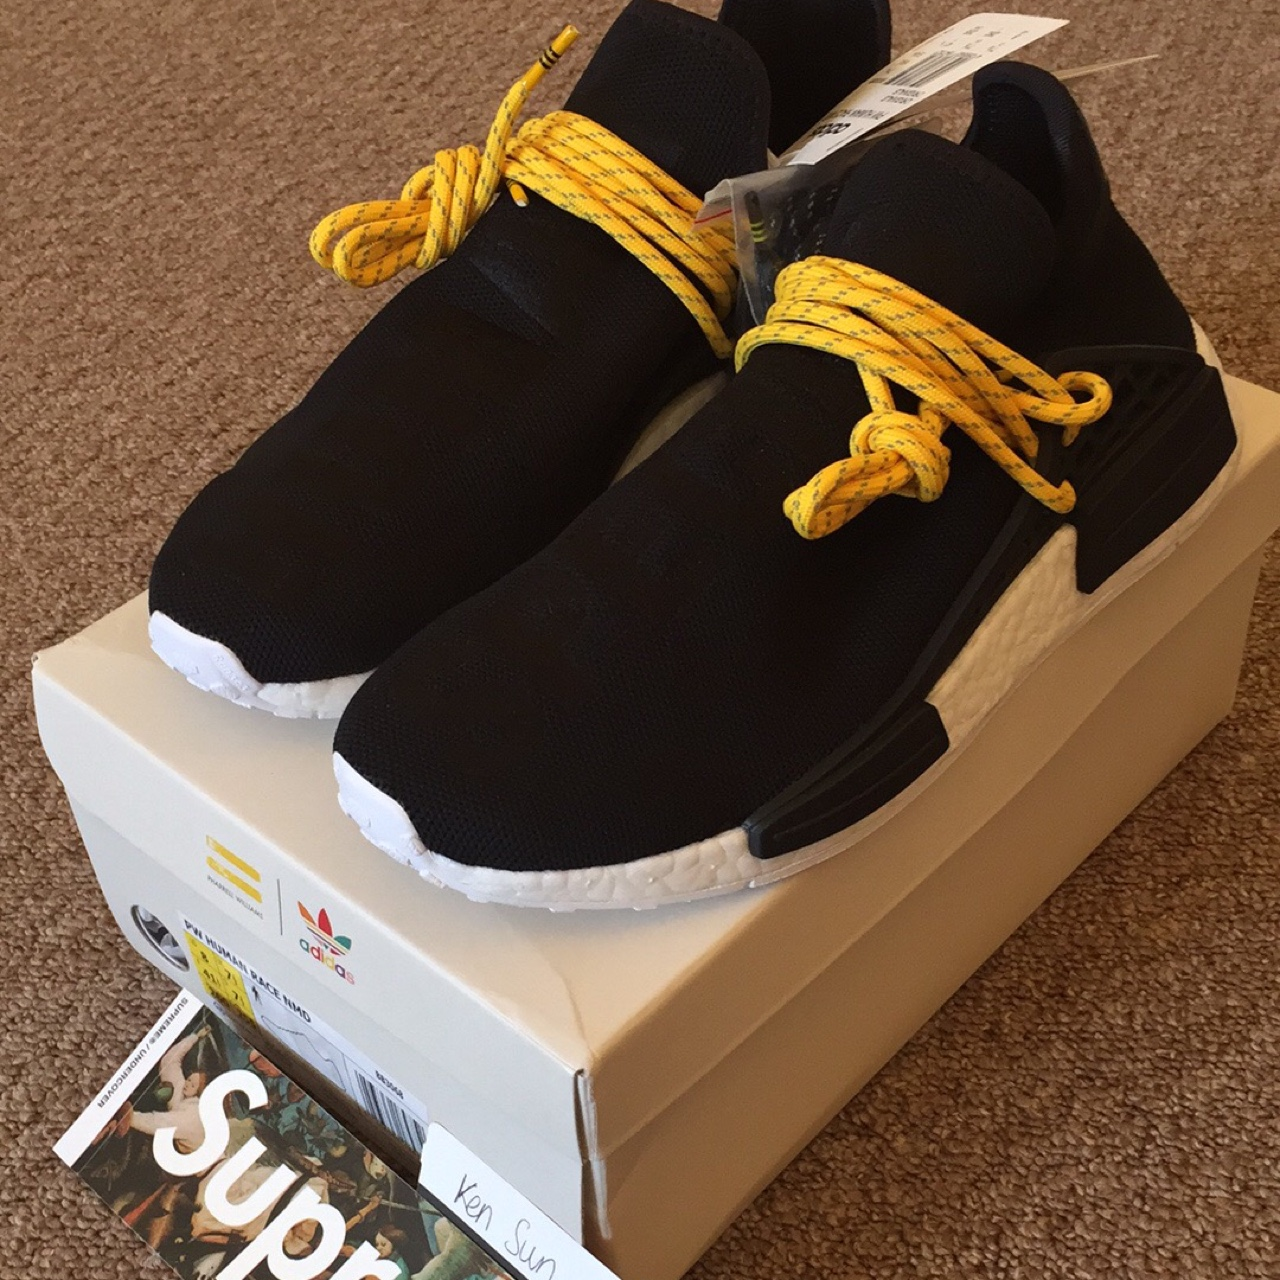 hot sale online 0a75e b3903 NMD PW Human Race - Black US8 UK7.5. Brand new in ...